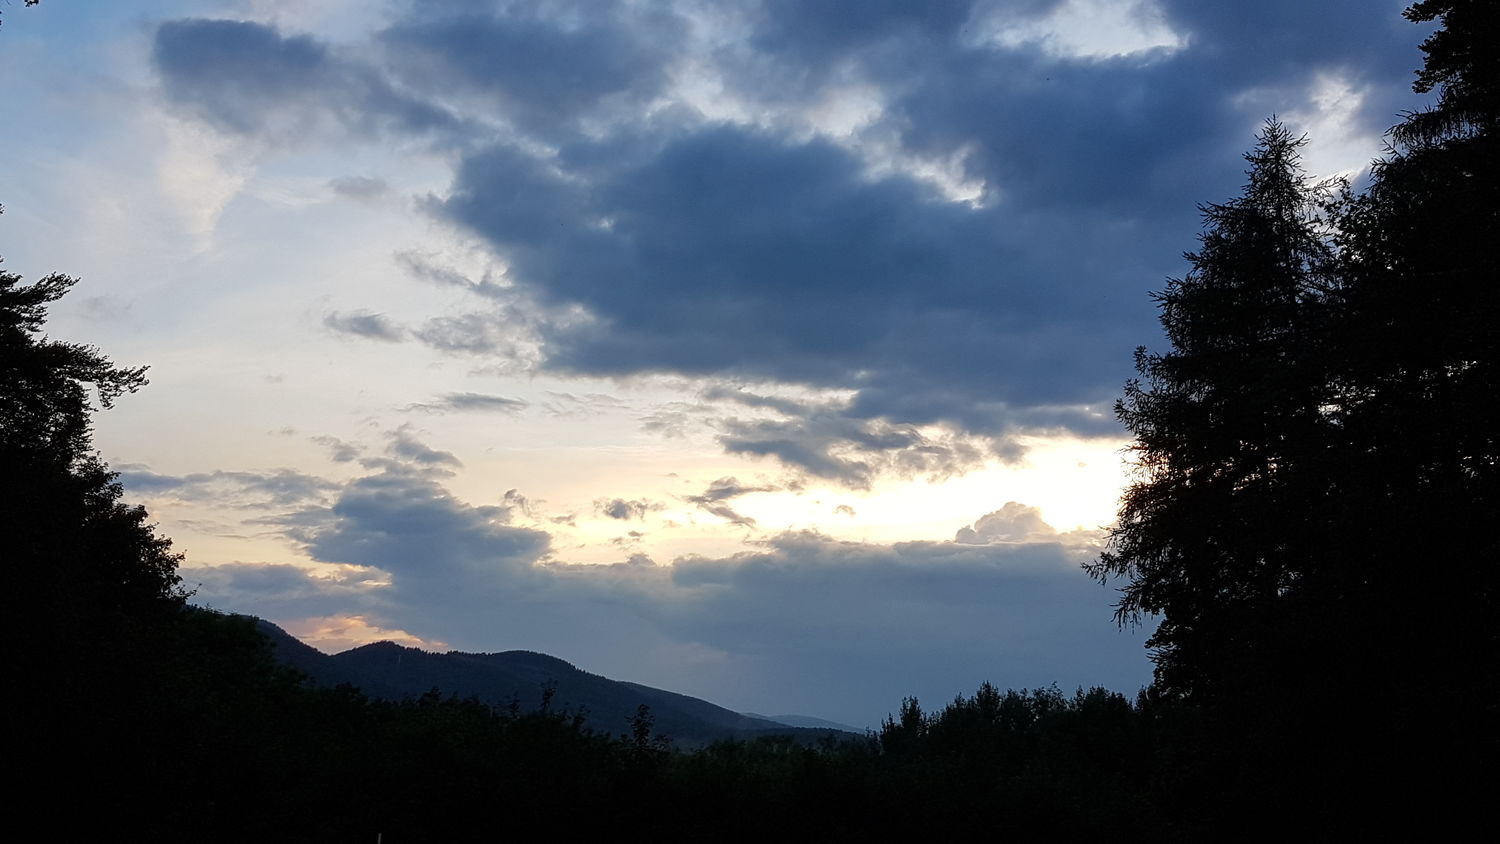 Beauty In Nature Cloud - Sky Day Low Angle View Mountain Nature No People Outdoors Scenics Silhouette Sky Sunset Tranquil Scene Tranquility Tree